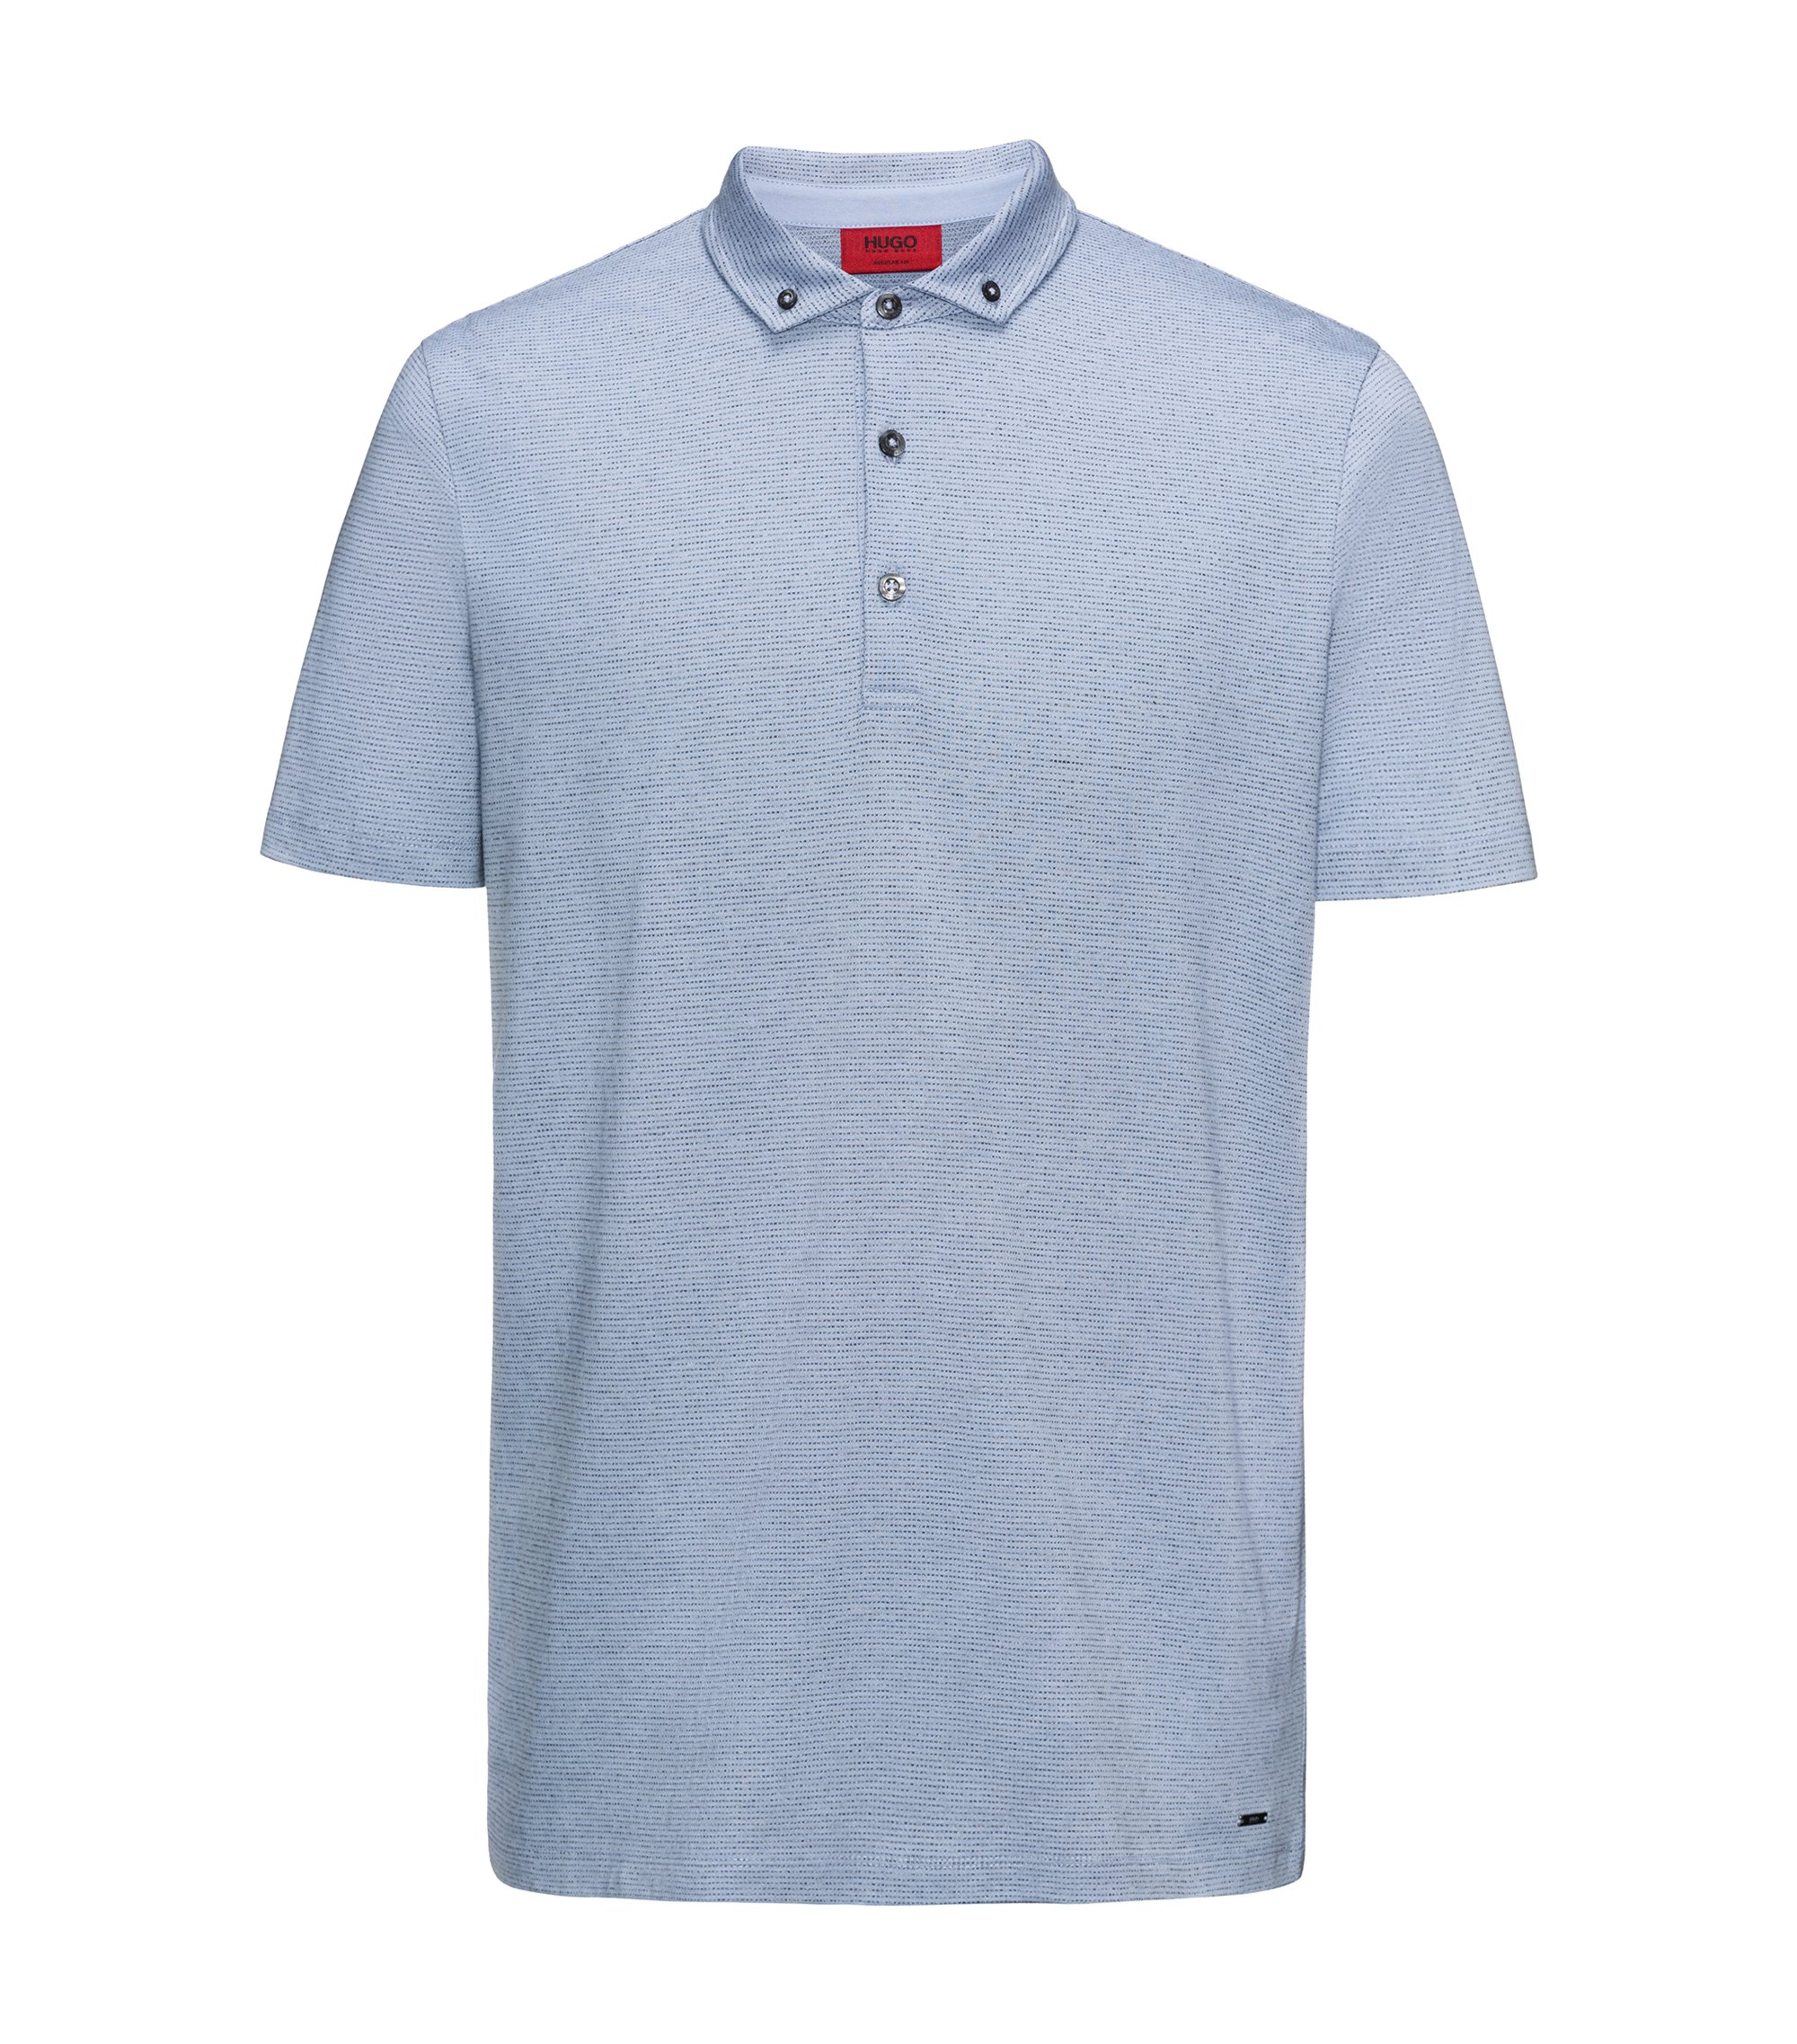 Cotton Blend Polo Shirt, Regular Fit | Deleton, Light Blue